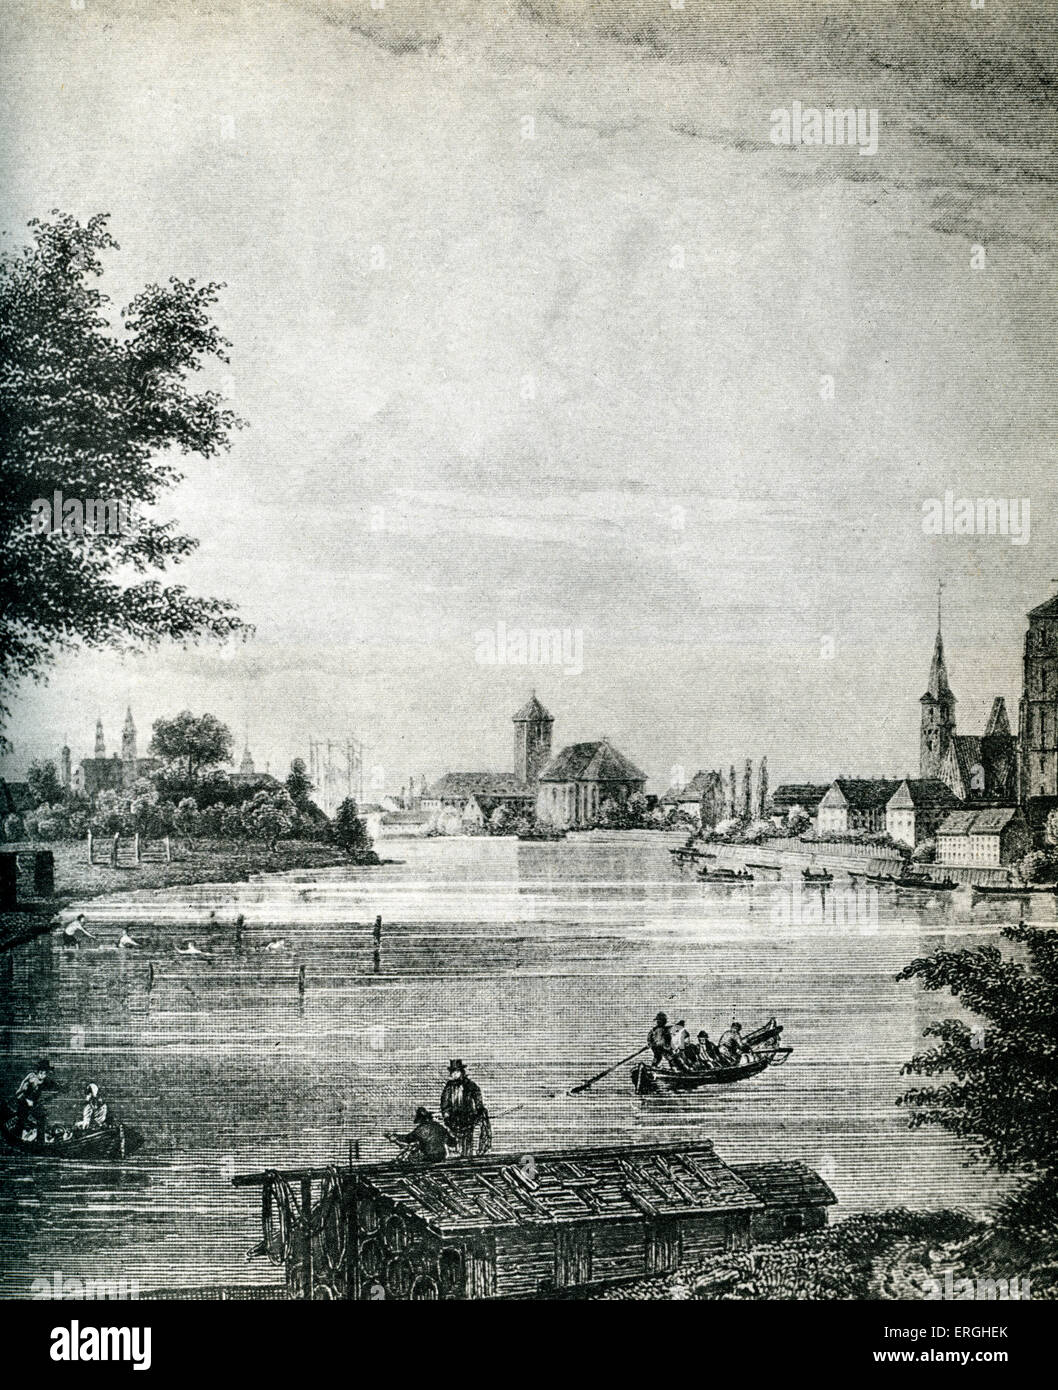 Wrocław, Poland, 19th century. City on the River Oder .  Known as Breslau in German. - Stock Image